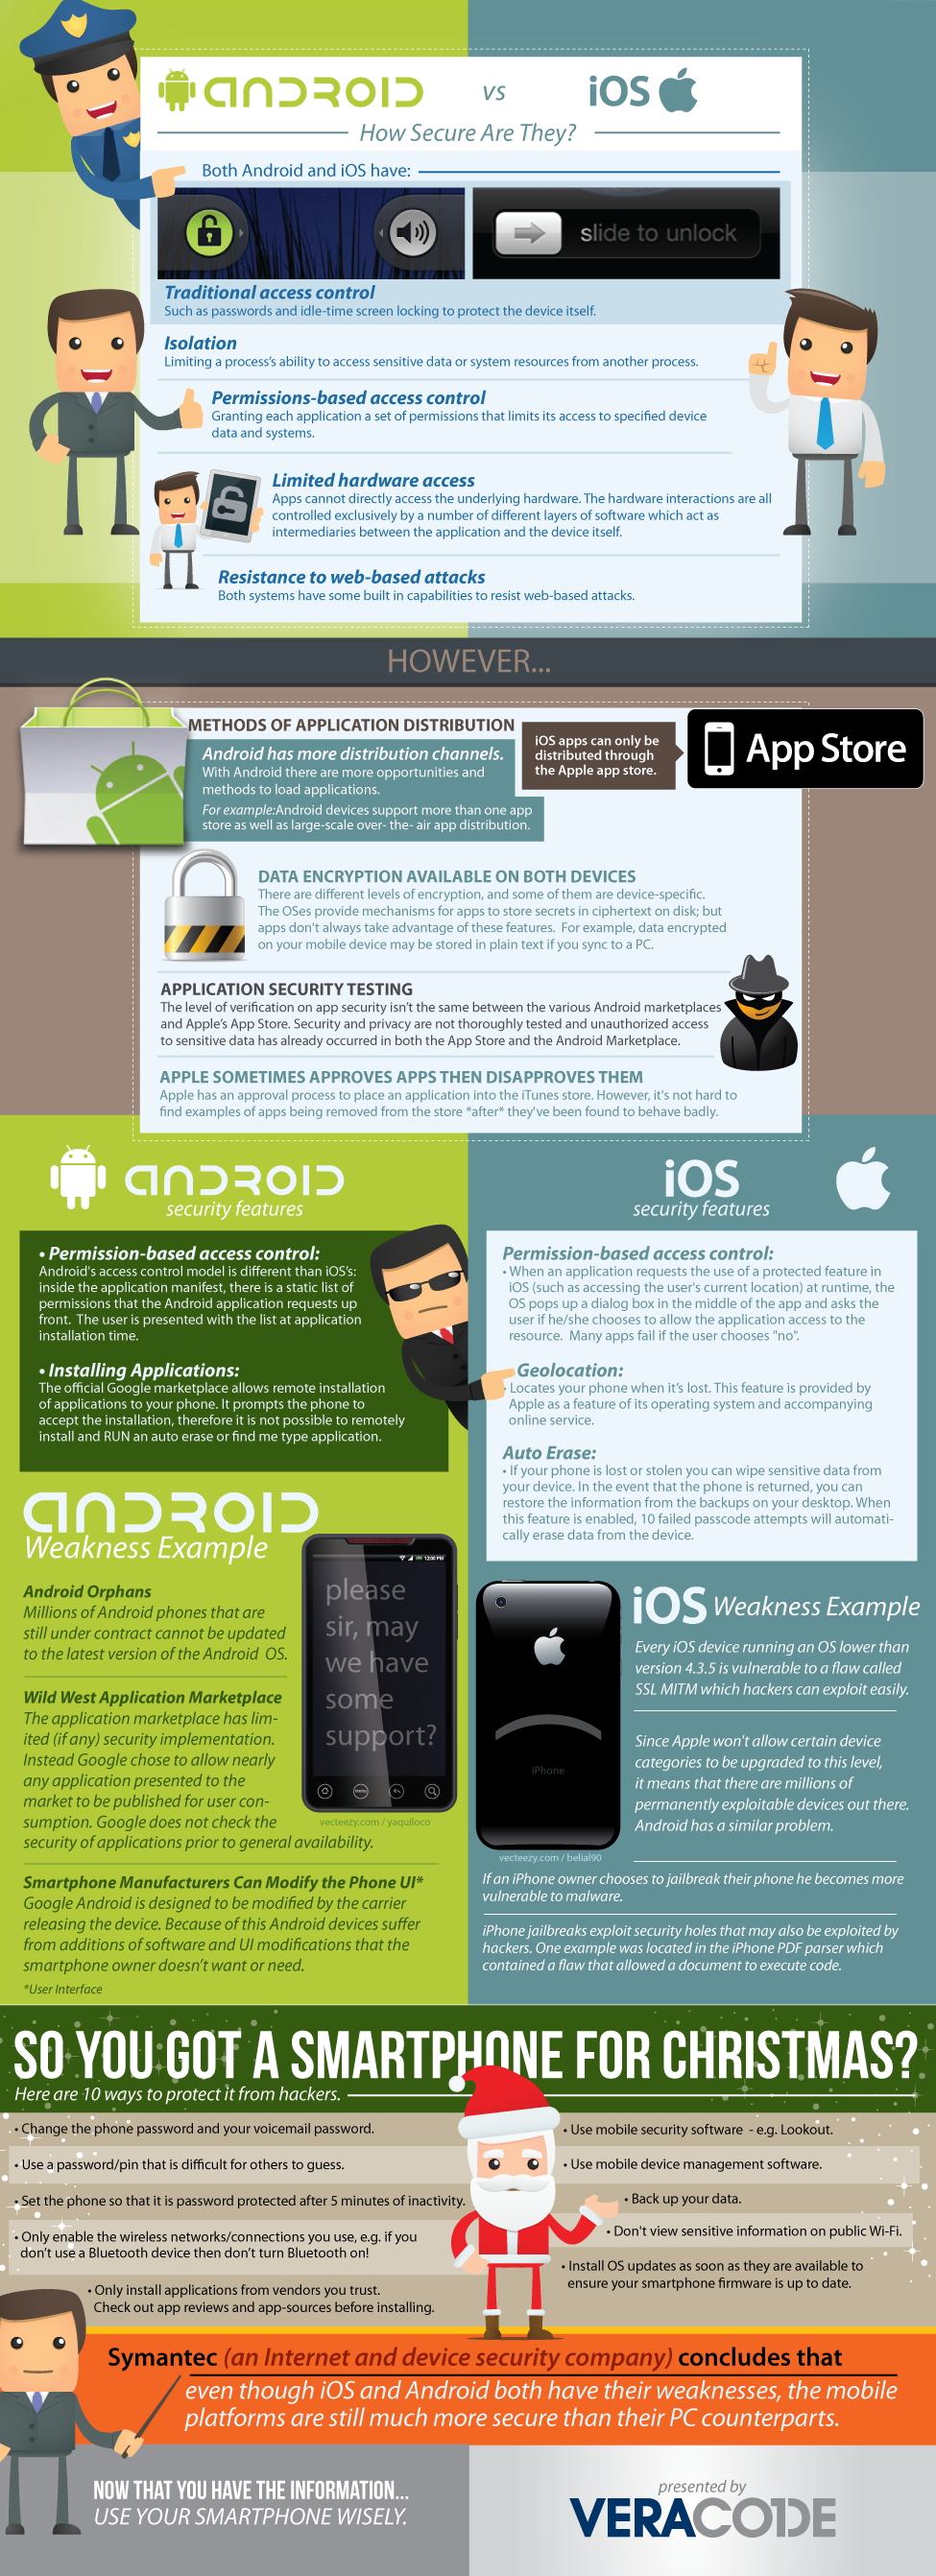 Mobile Security - Android vs  iOS | Veracode